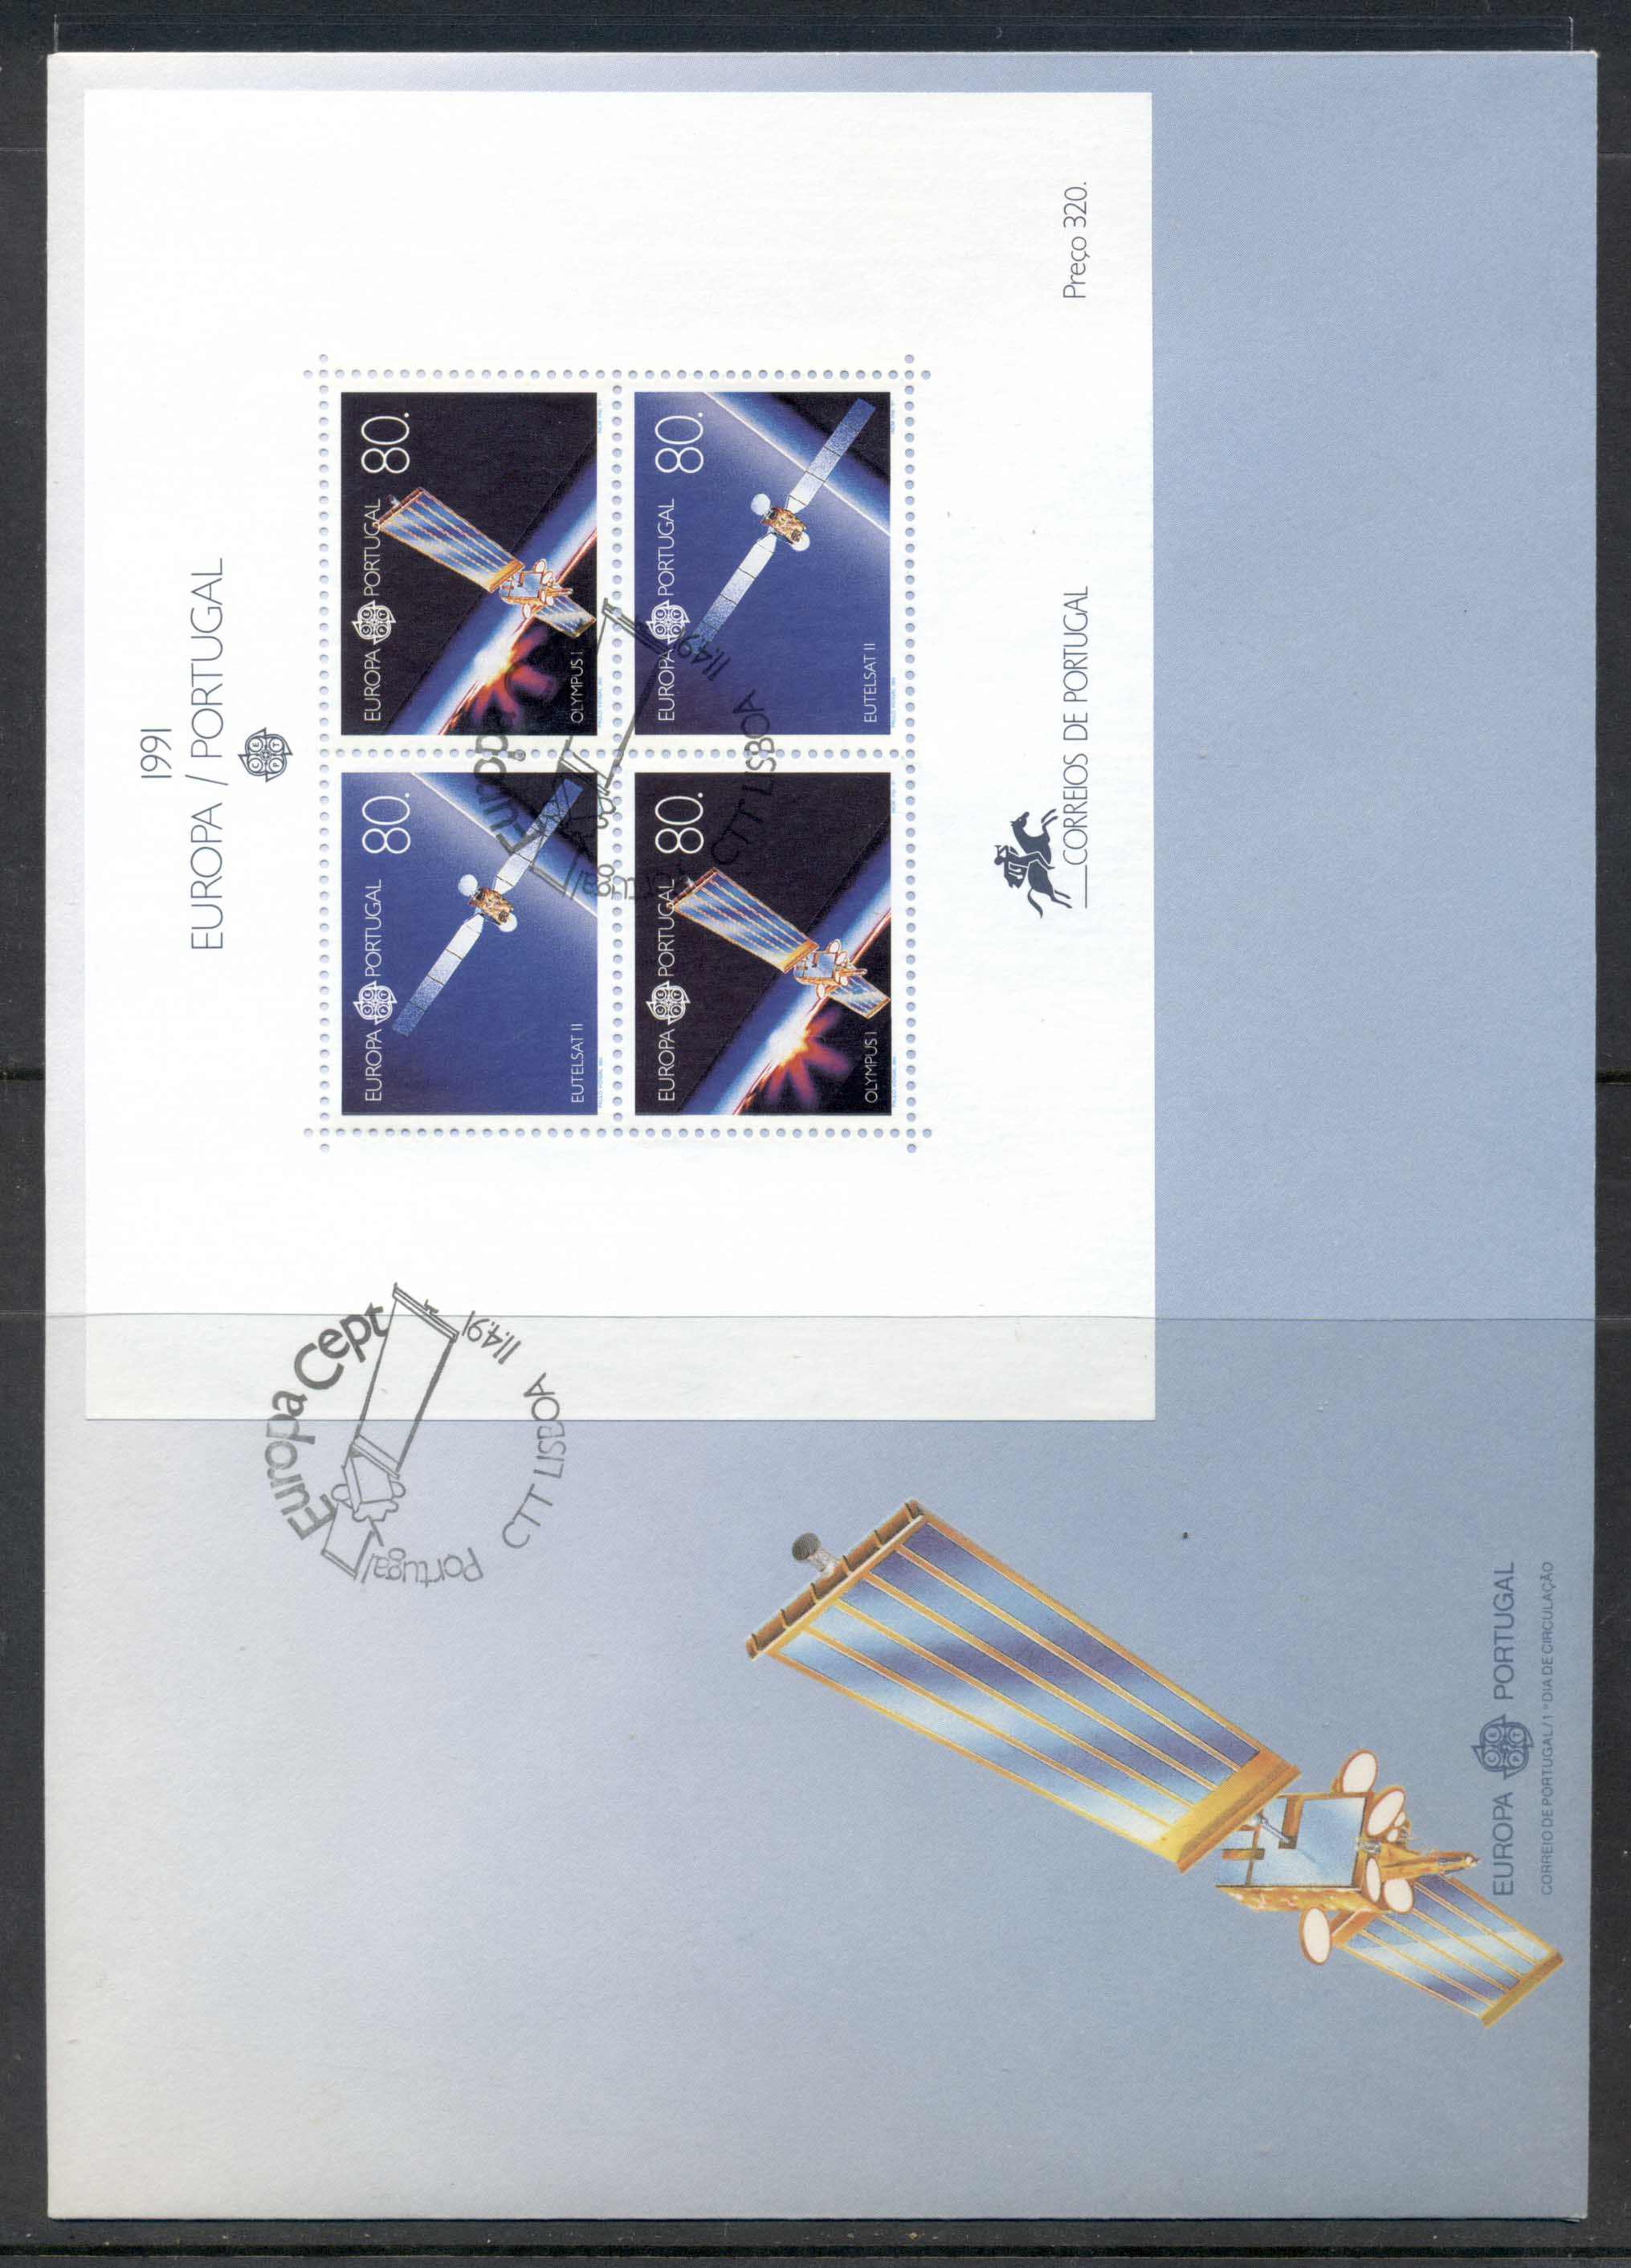 Portugal 1991 Europa Man in Space XLMS FDC